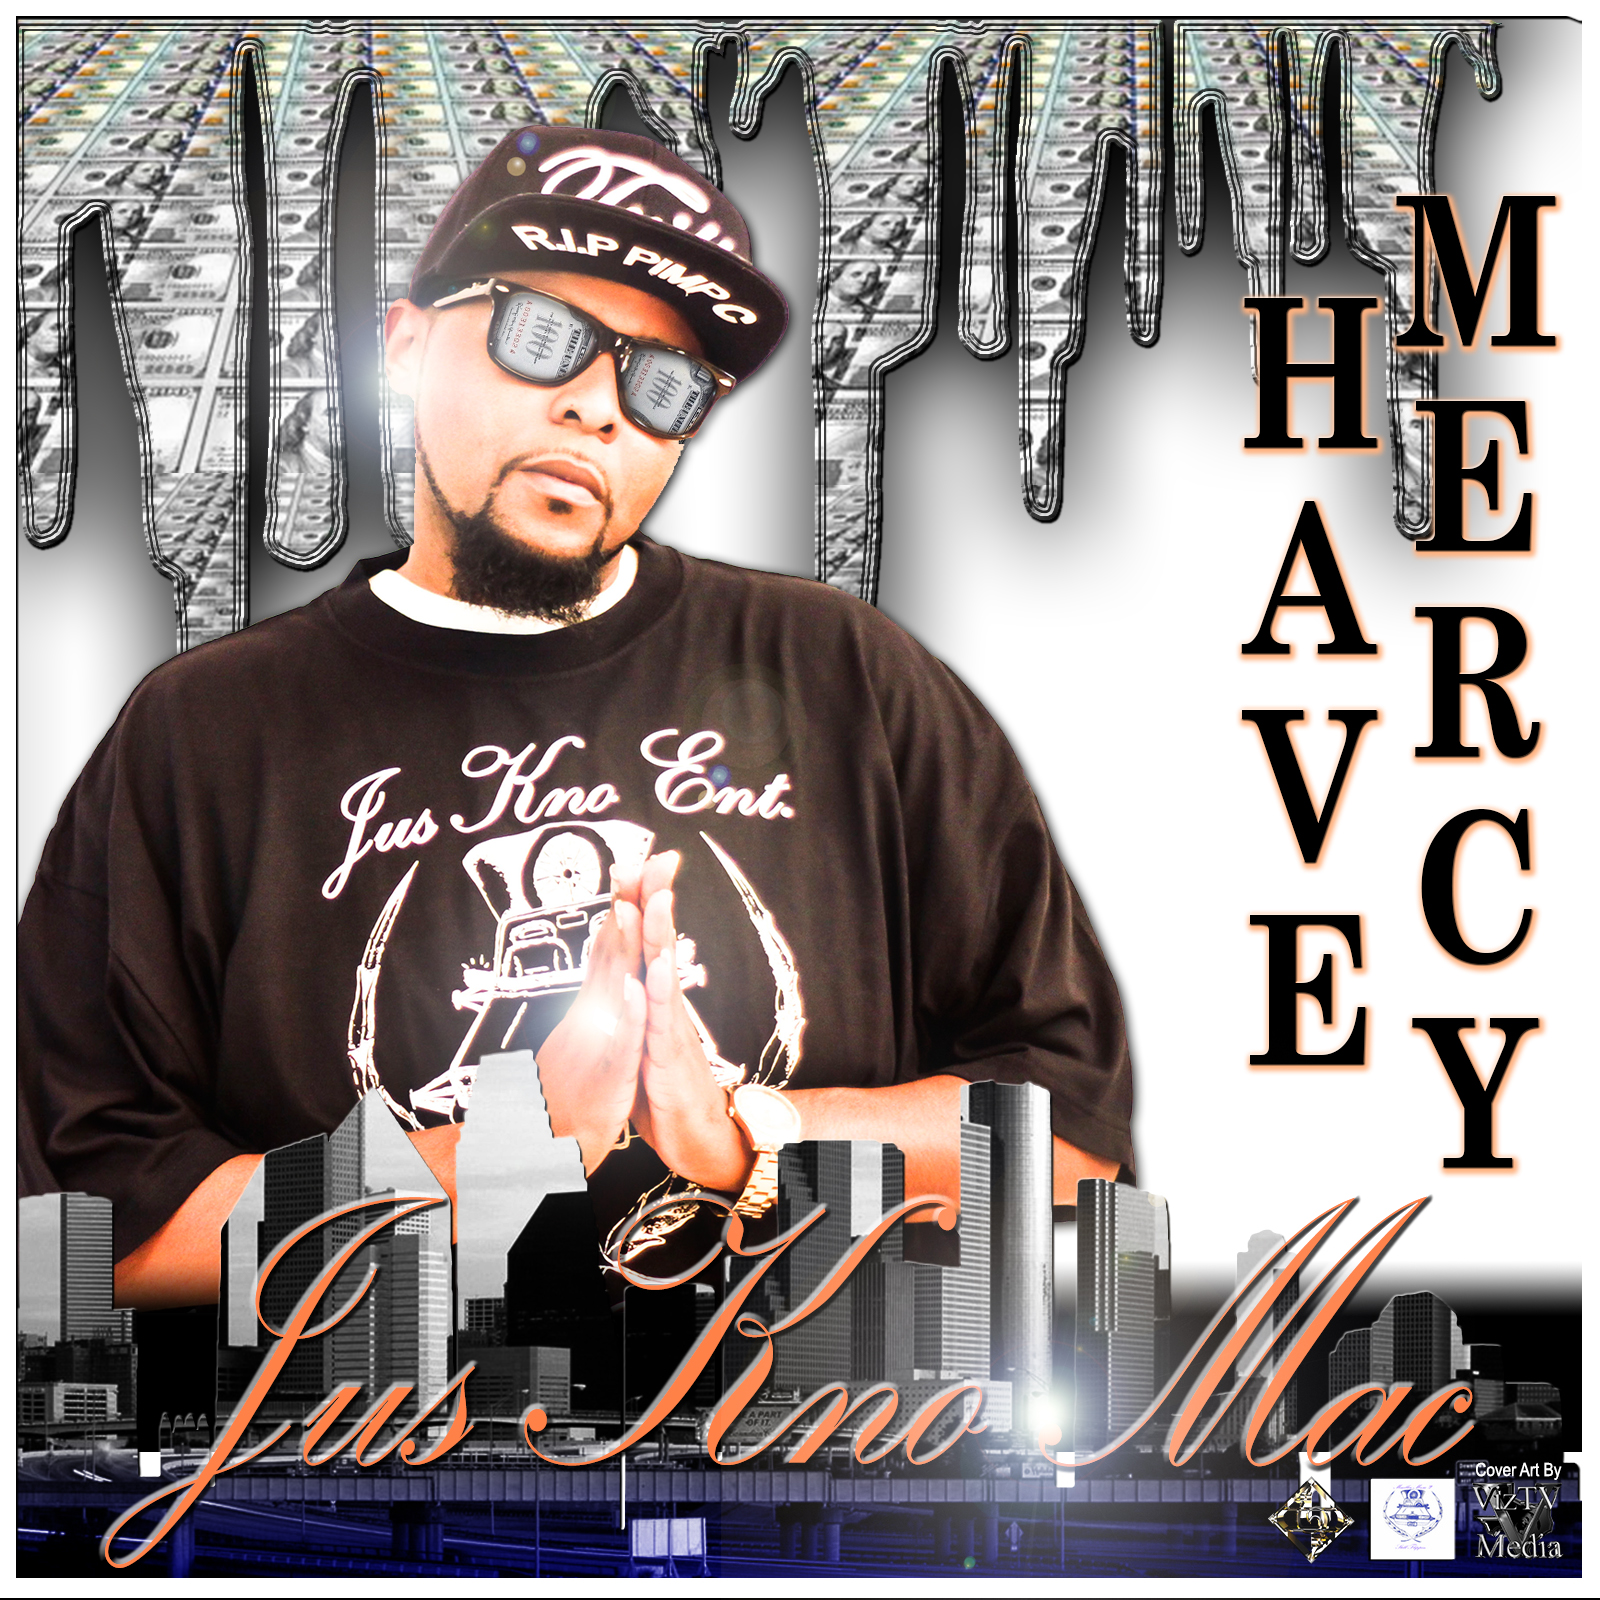 Cover Art - Album Cover Design for MP3's (Jus Kno Mac)